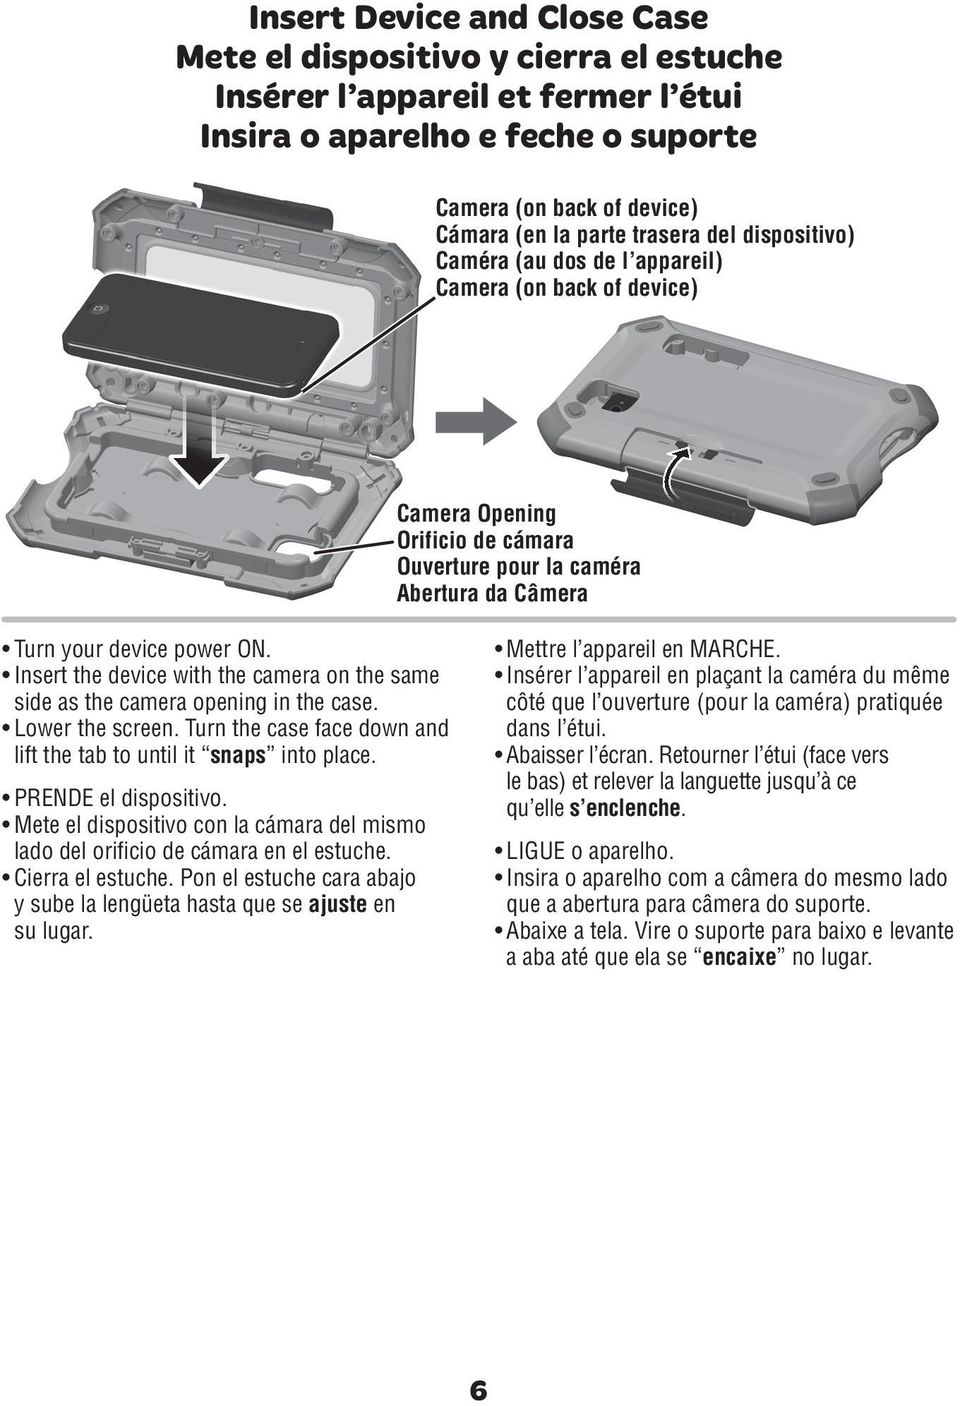 Insert the device with the camera on the same side as the camera opening in the case. Lower the screen. Turn the case face down and lift the tab to until it snaps into place. PRENDE el dispositivo.